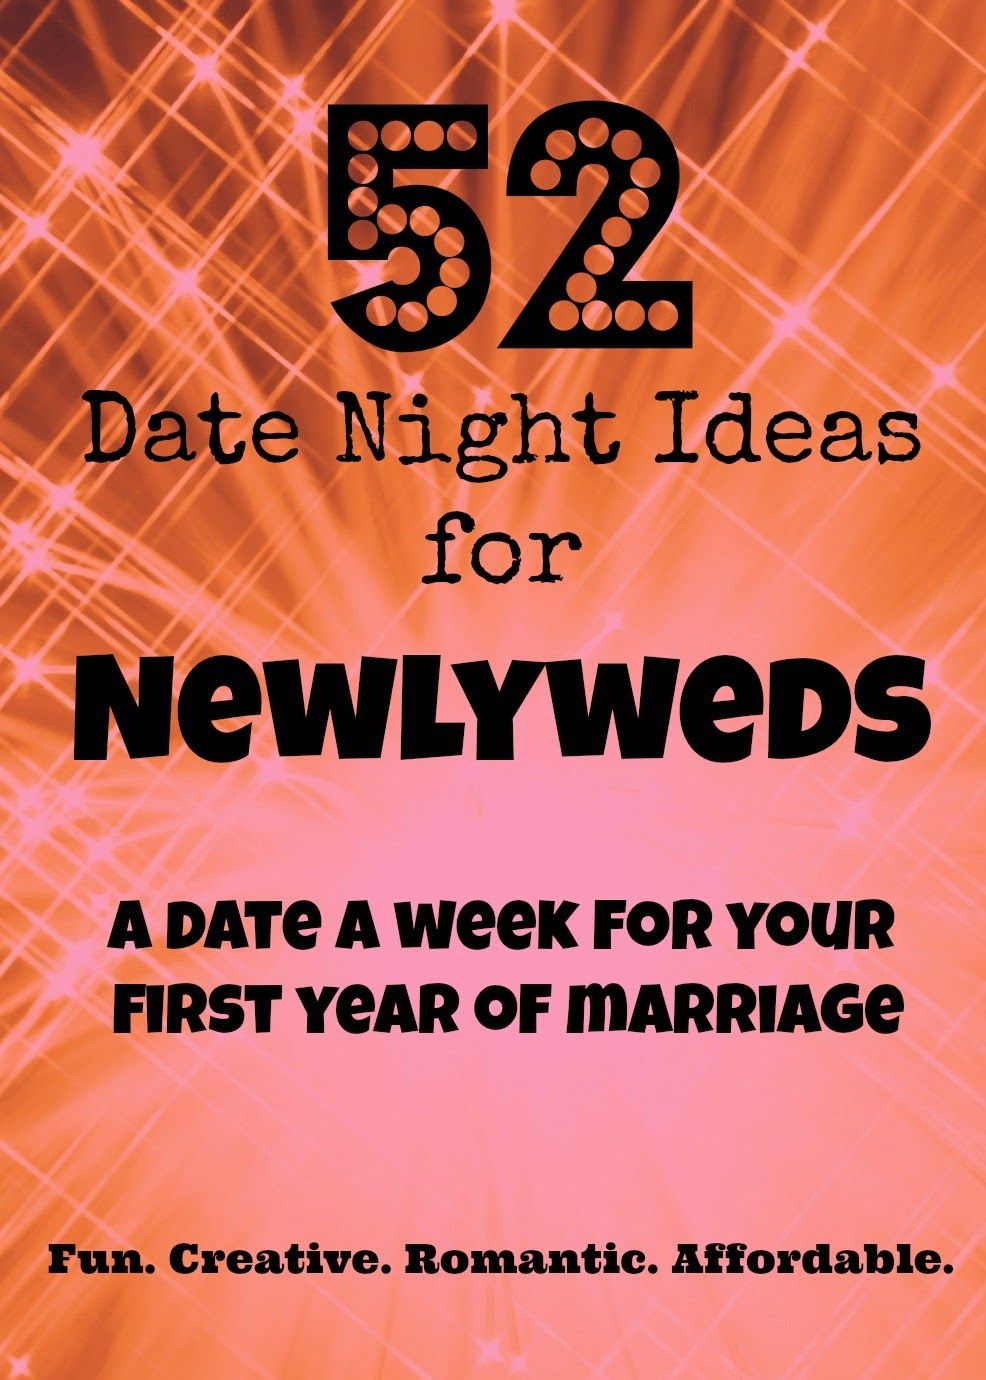 52 date night ideas for newlyweds these date ideas are so fun for newly married couples